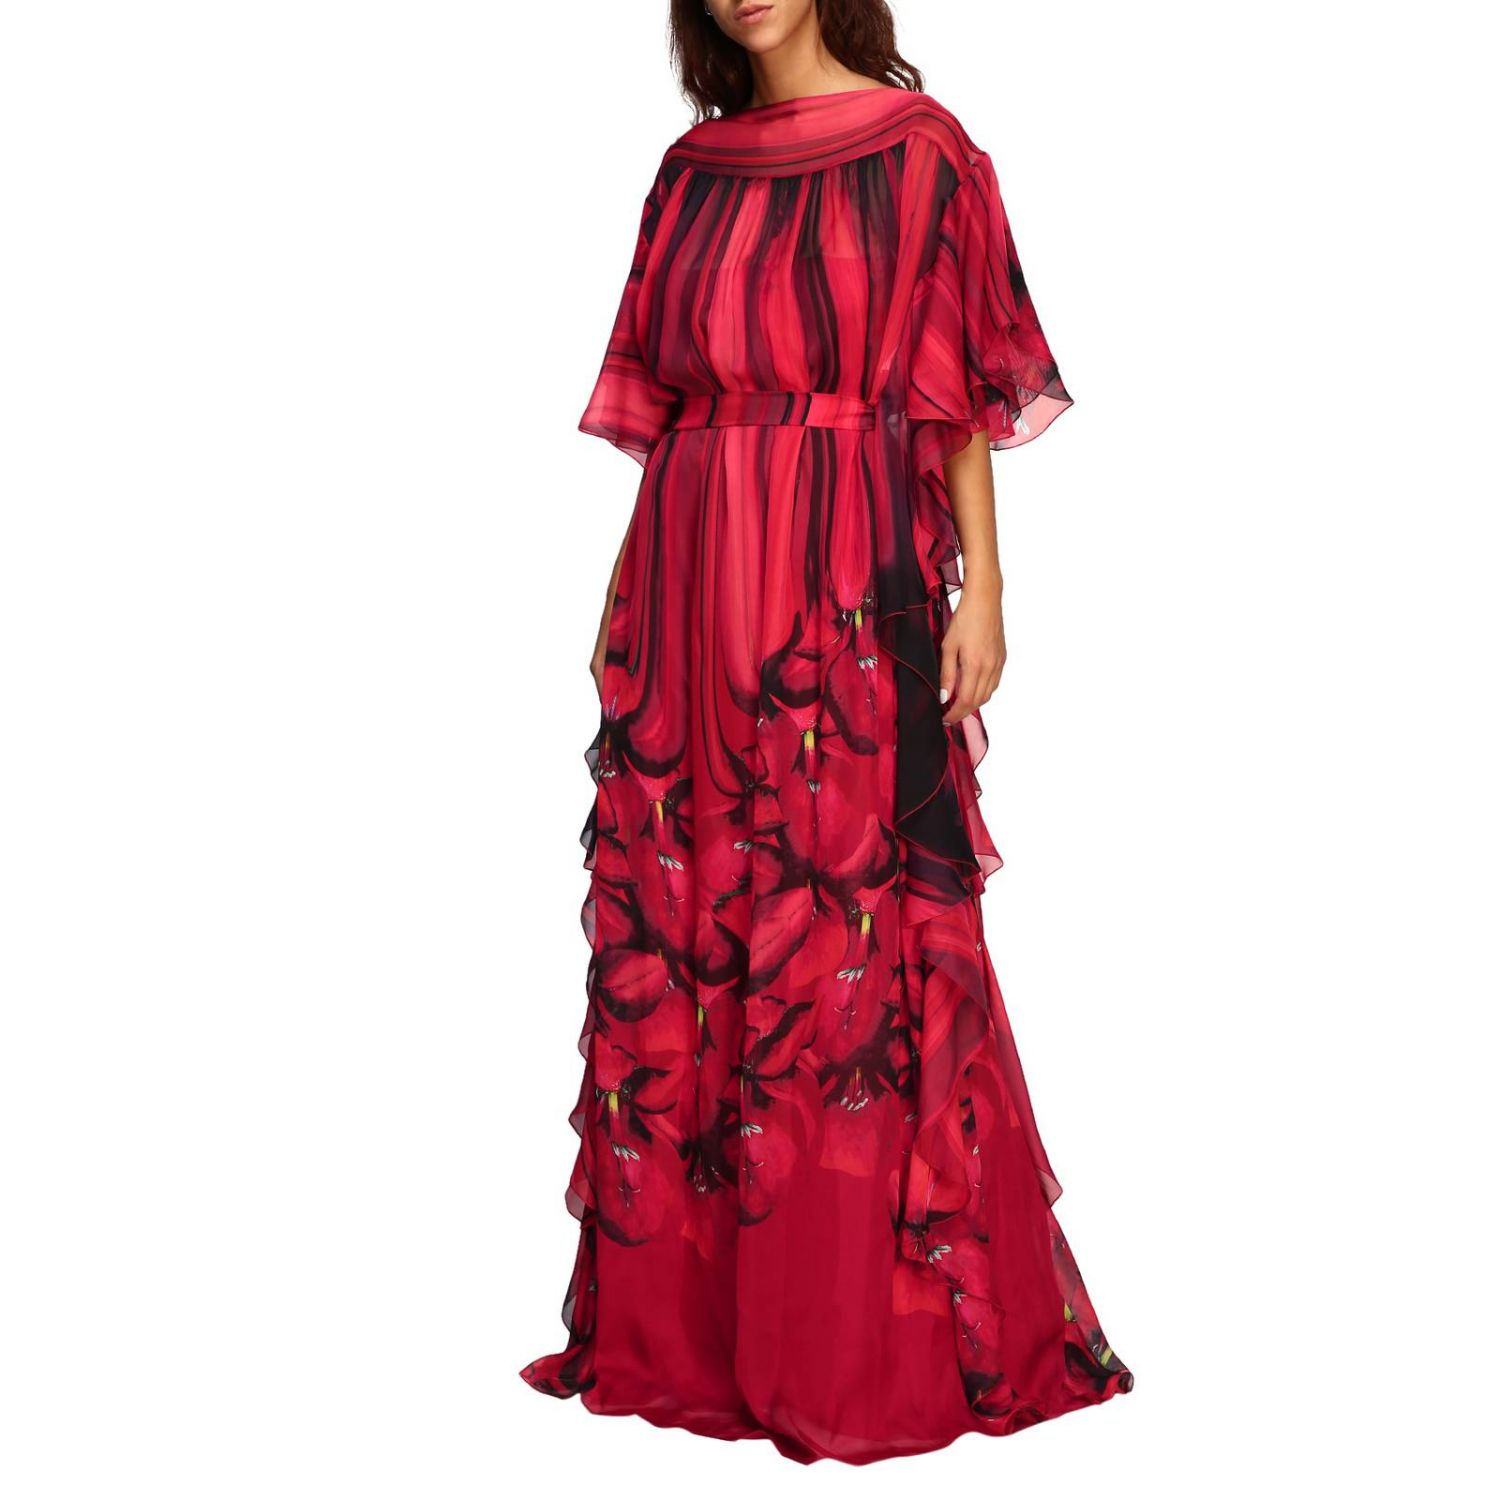 Dress Alberta Ferretti: Alberta Ferretti long dress with floral pattern with rouches red 3